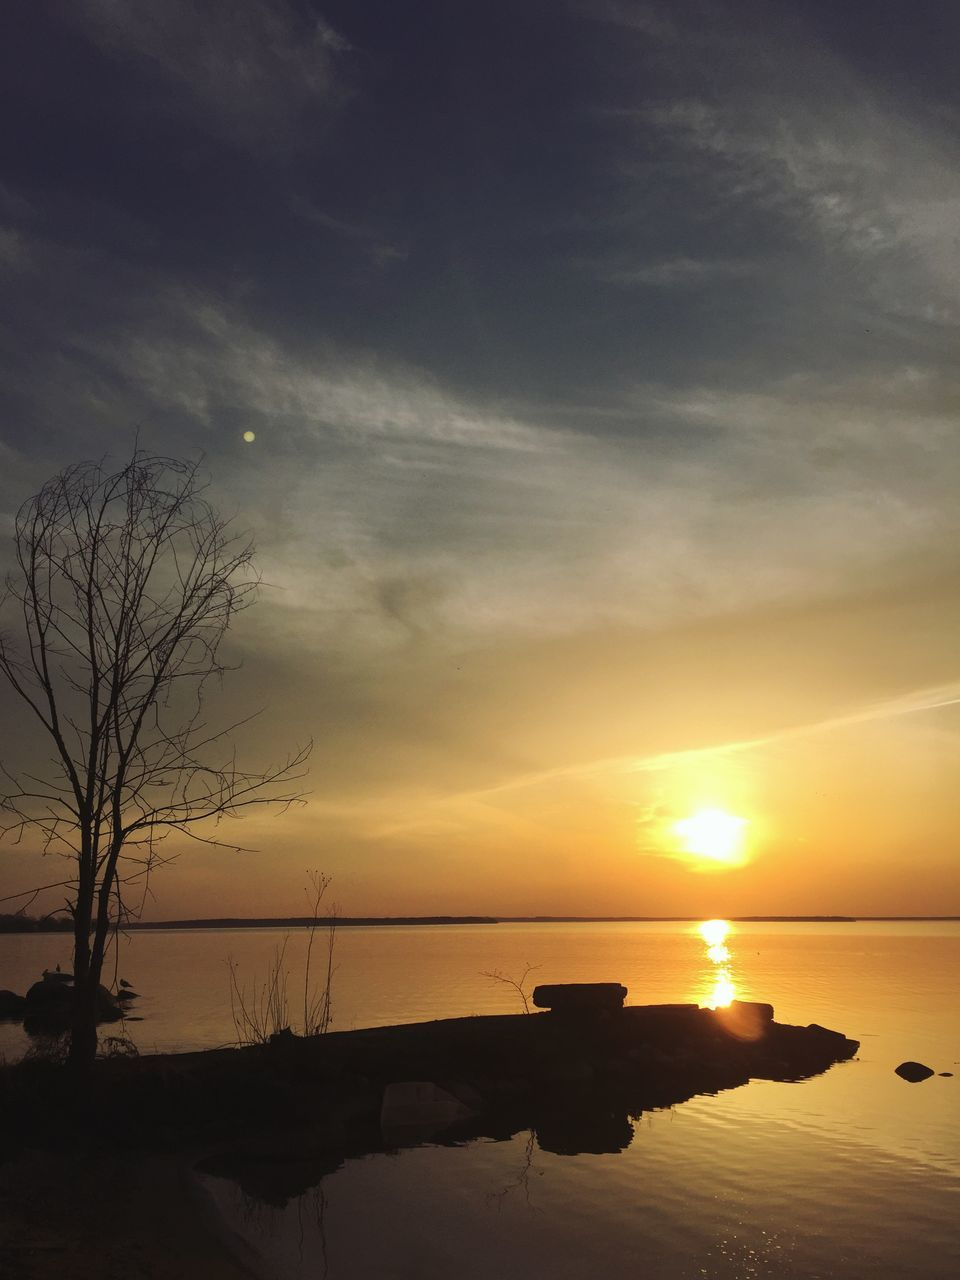 sunset, reflection, tranquility, scenics, beauty in nature, tranquil scene, nature, water, sky, sun, outdoors, lake, silhouette, bare tree, no people, horizon over water, tree, day